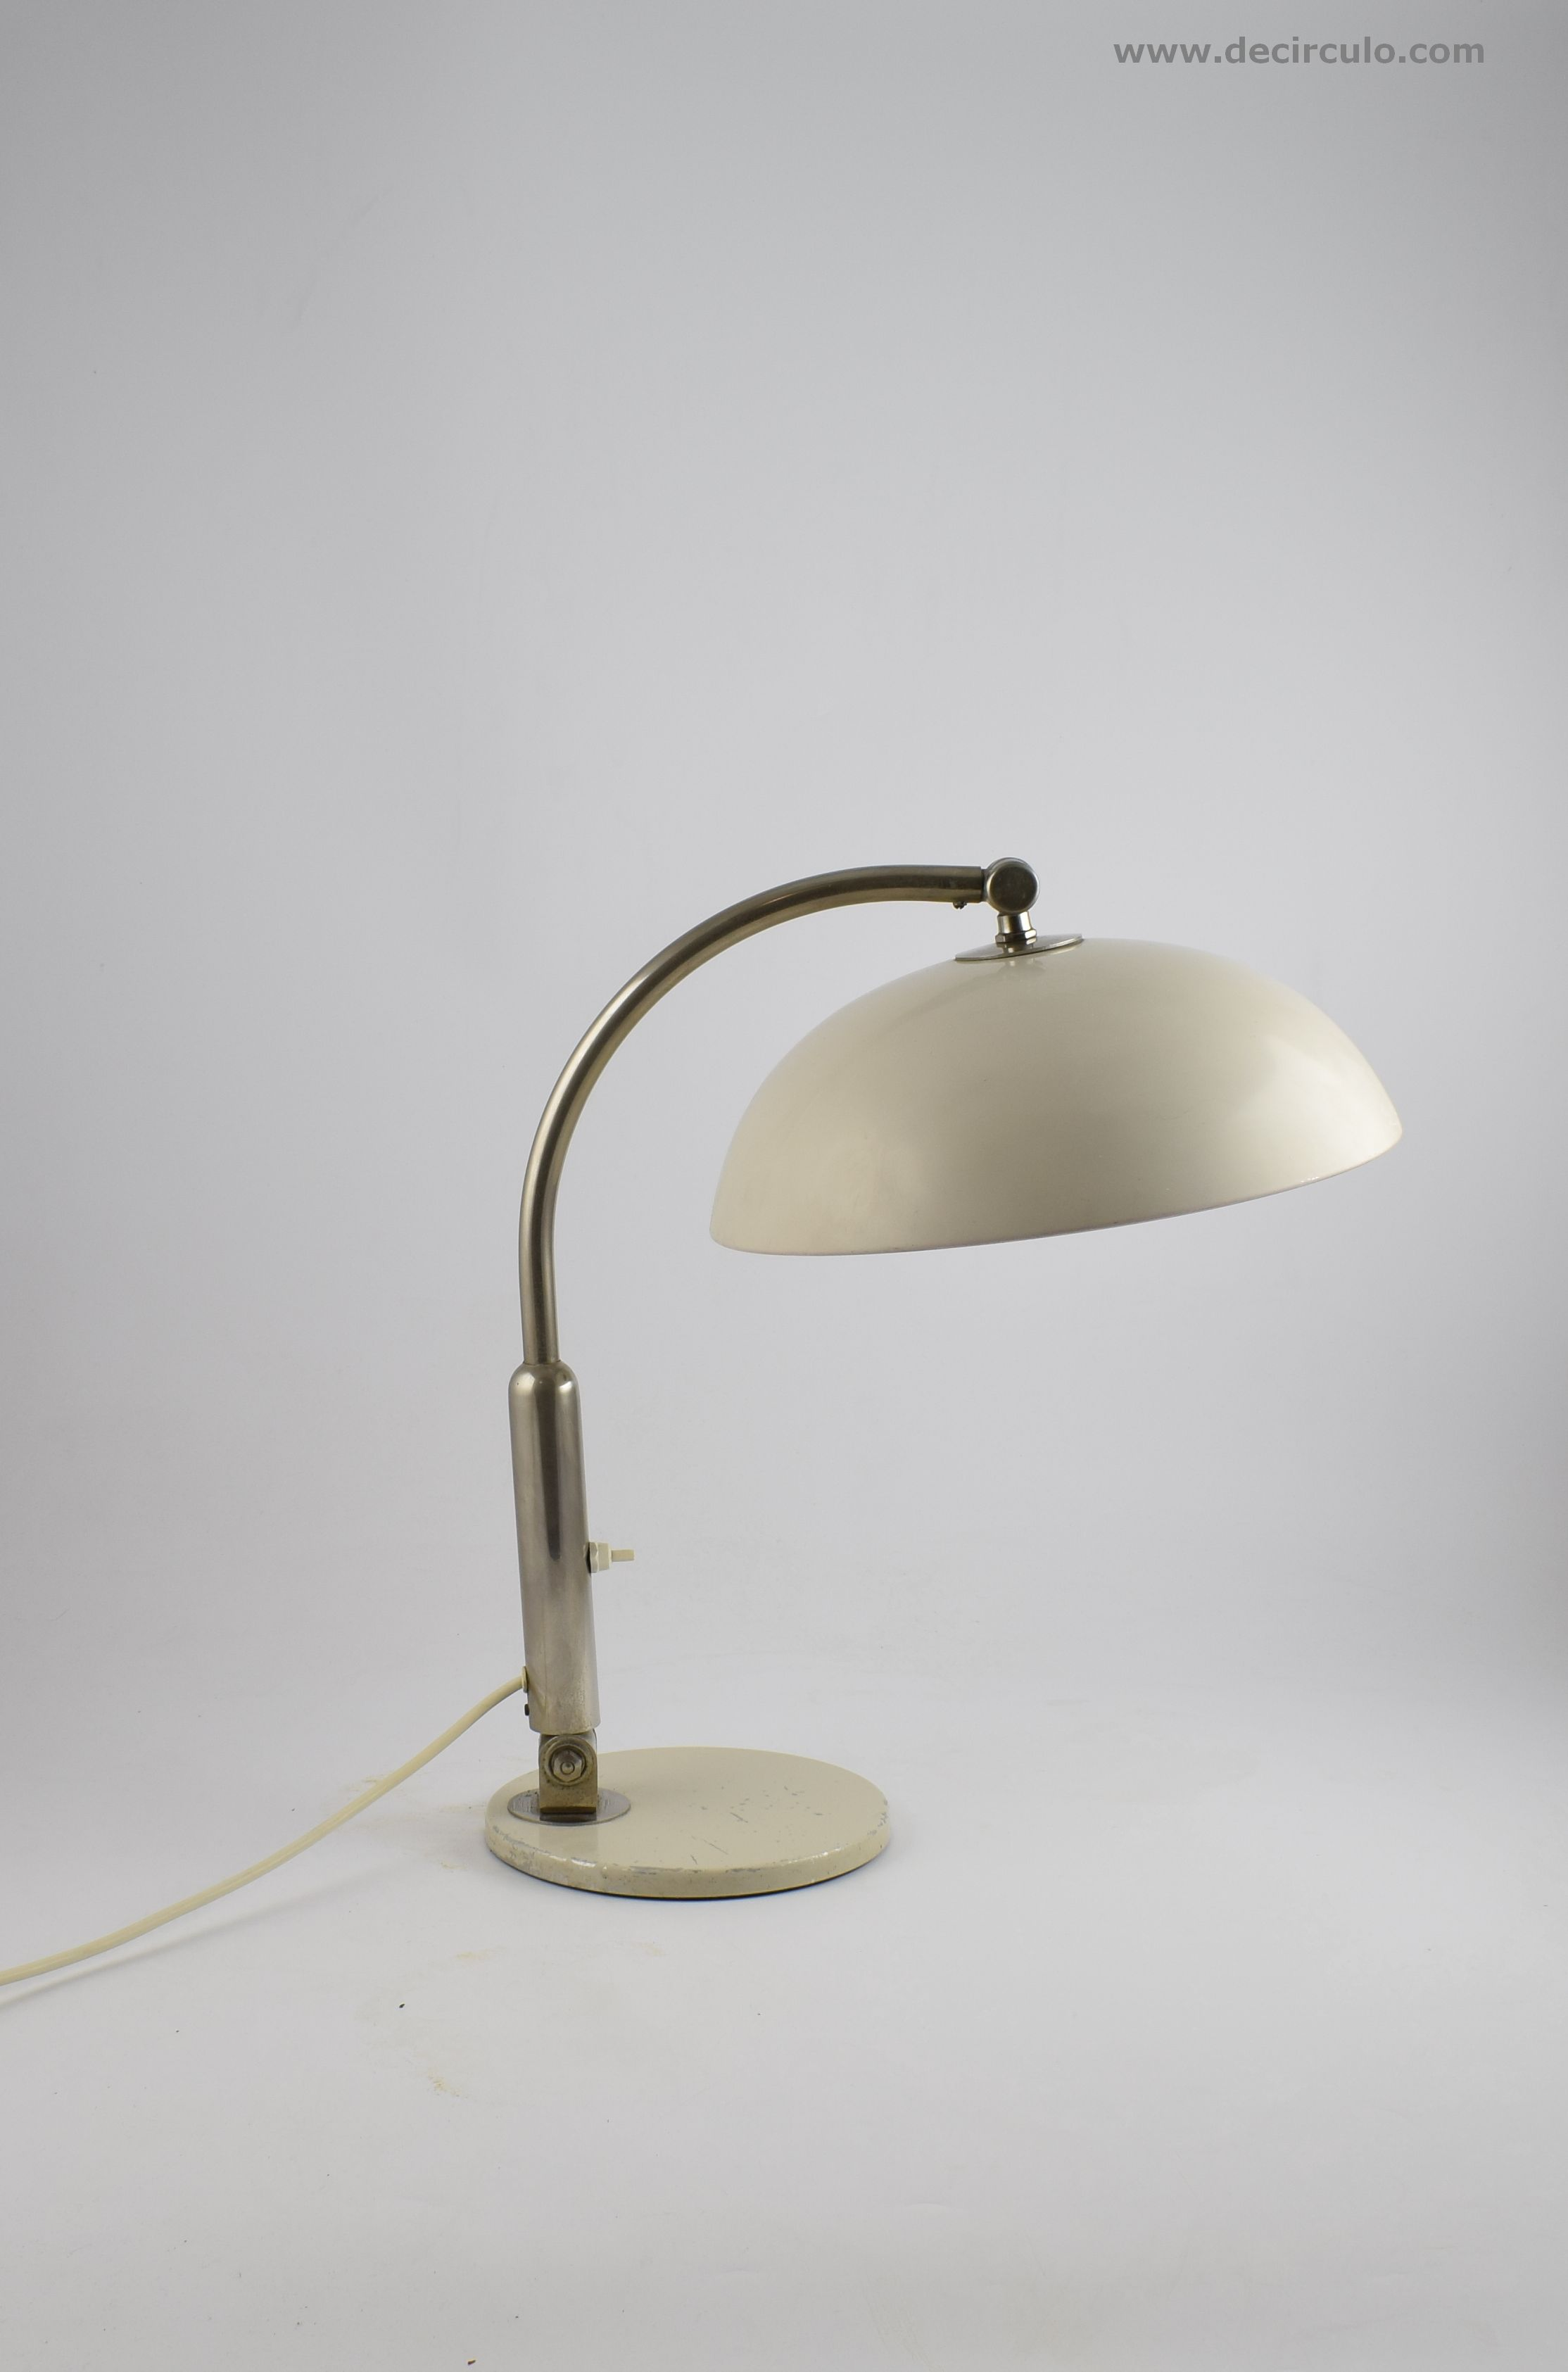 Hala Desklamp Model 144 White HA Busquet